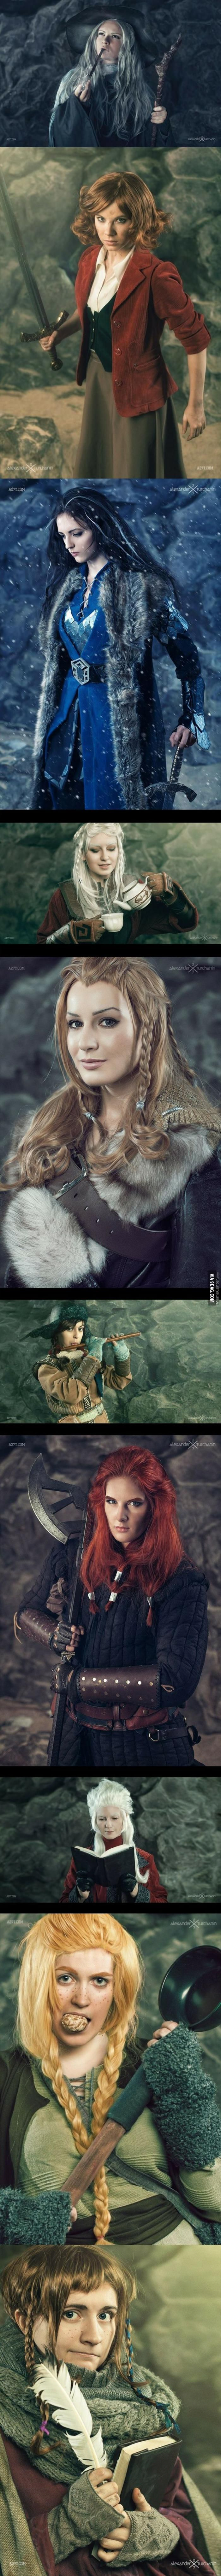 The Hobbit genderbend cosplay.  Most of the ladies are too pretty to be dwarves; nit picking aside, WOW this is GOOD